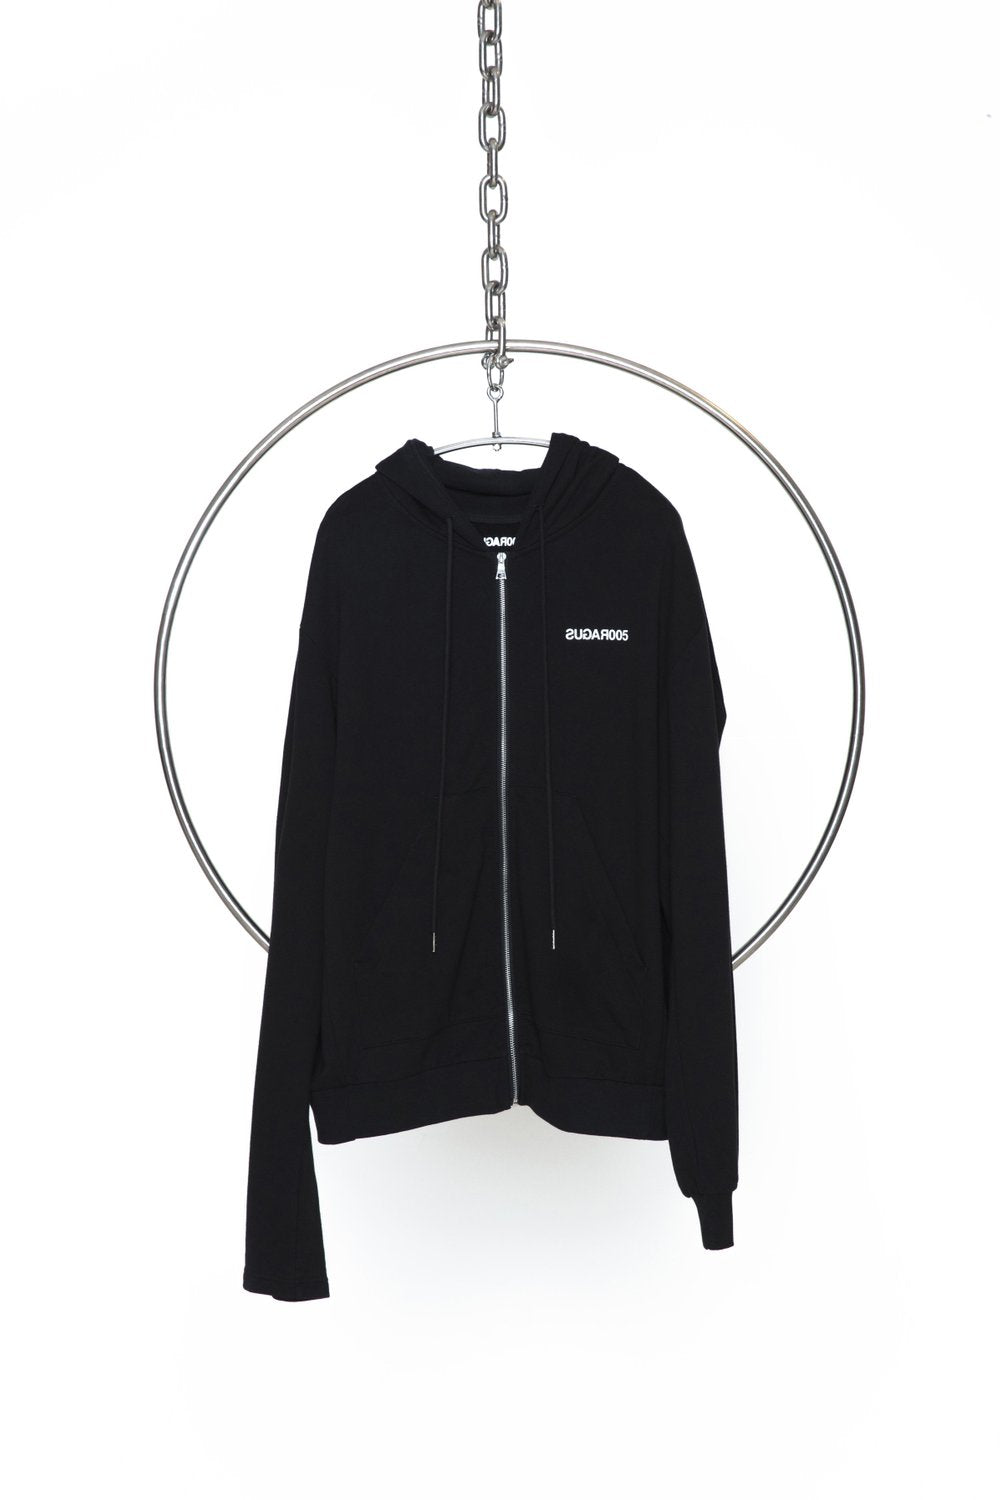 IRREGULAR ZIPUP - BLACK